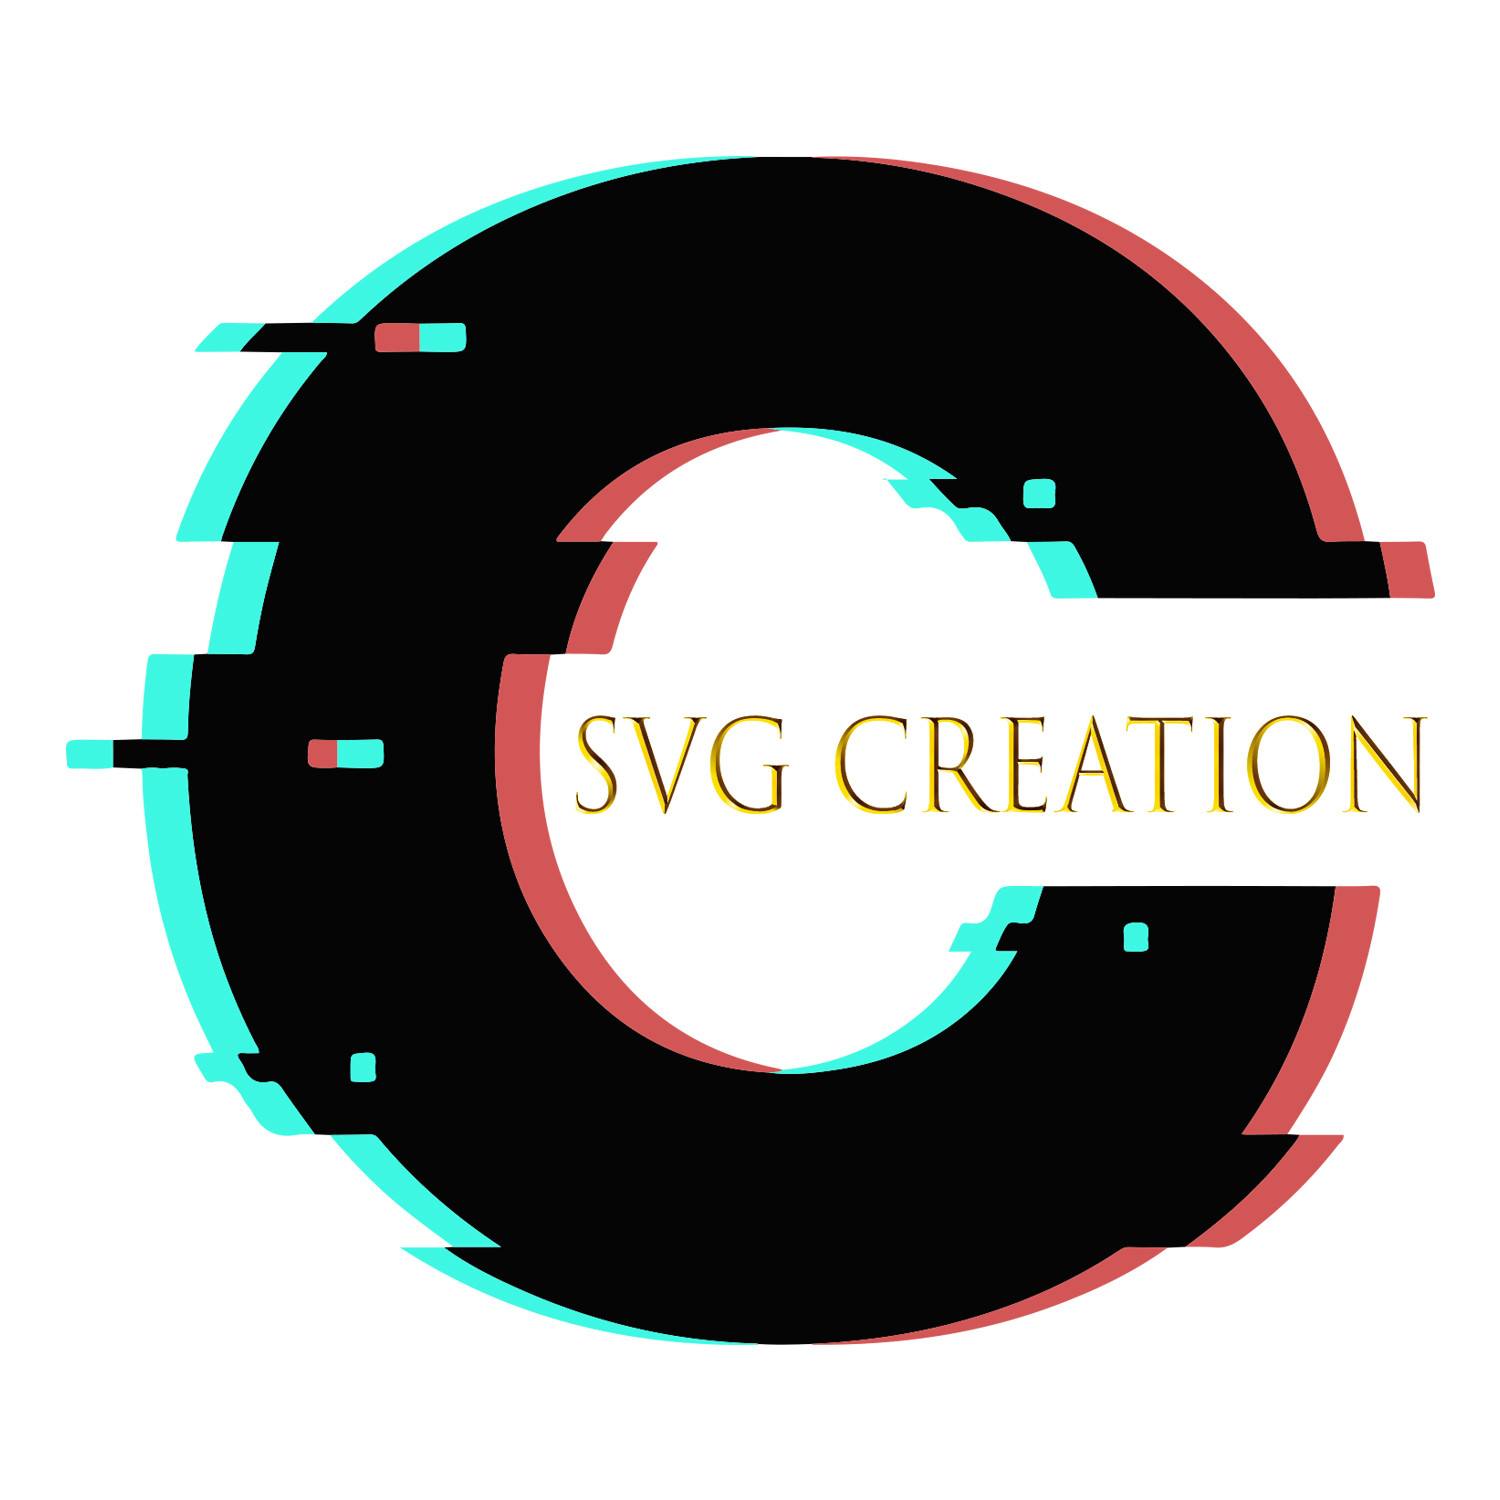 SVG Creation